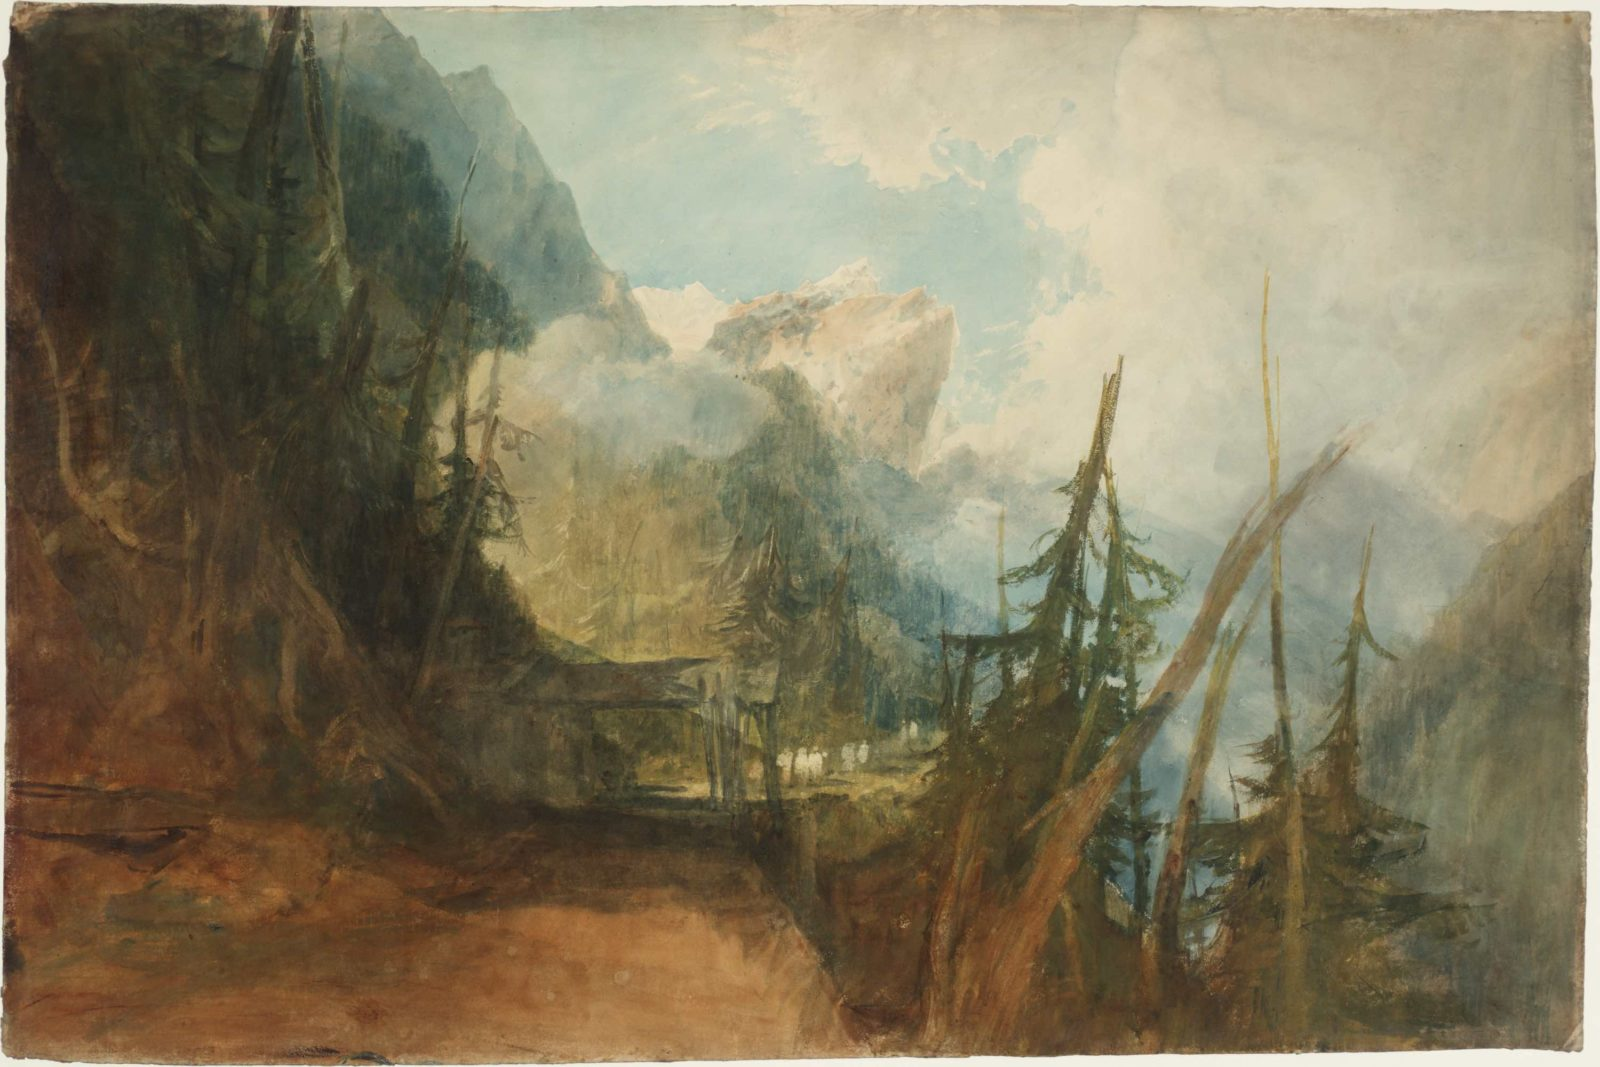 William Turner, The St Gotthard Road between Amsteg and Wassen